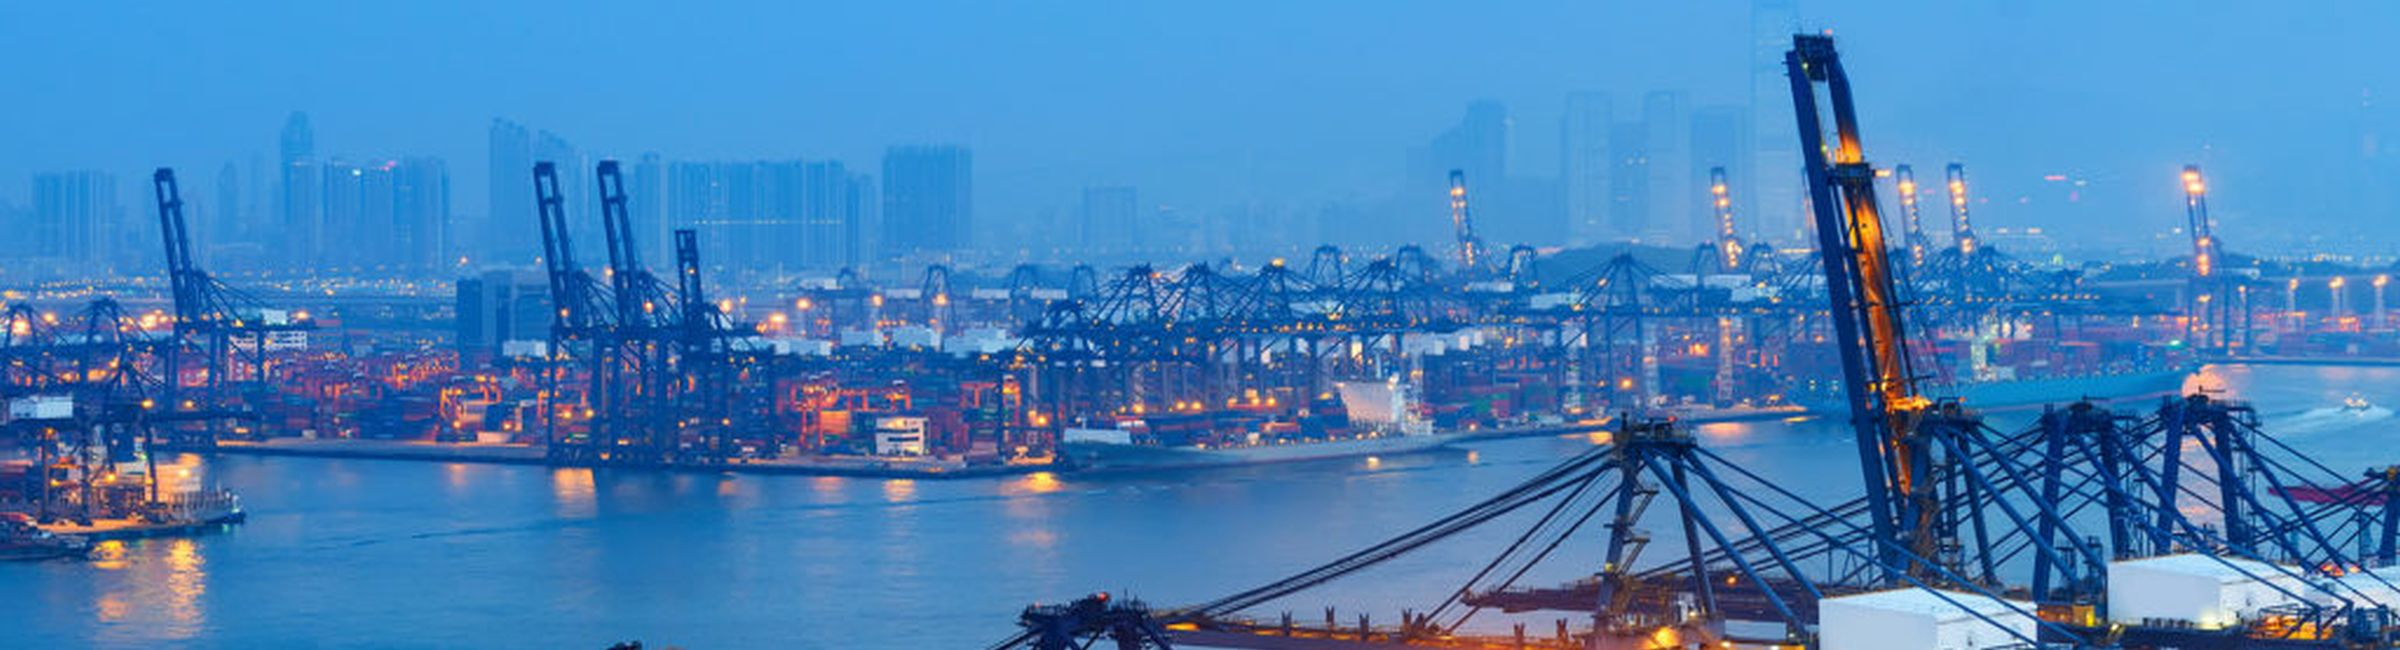 slider_industriehafen-2400×650